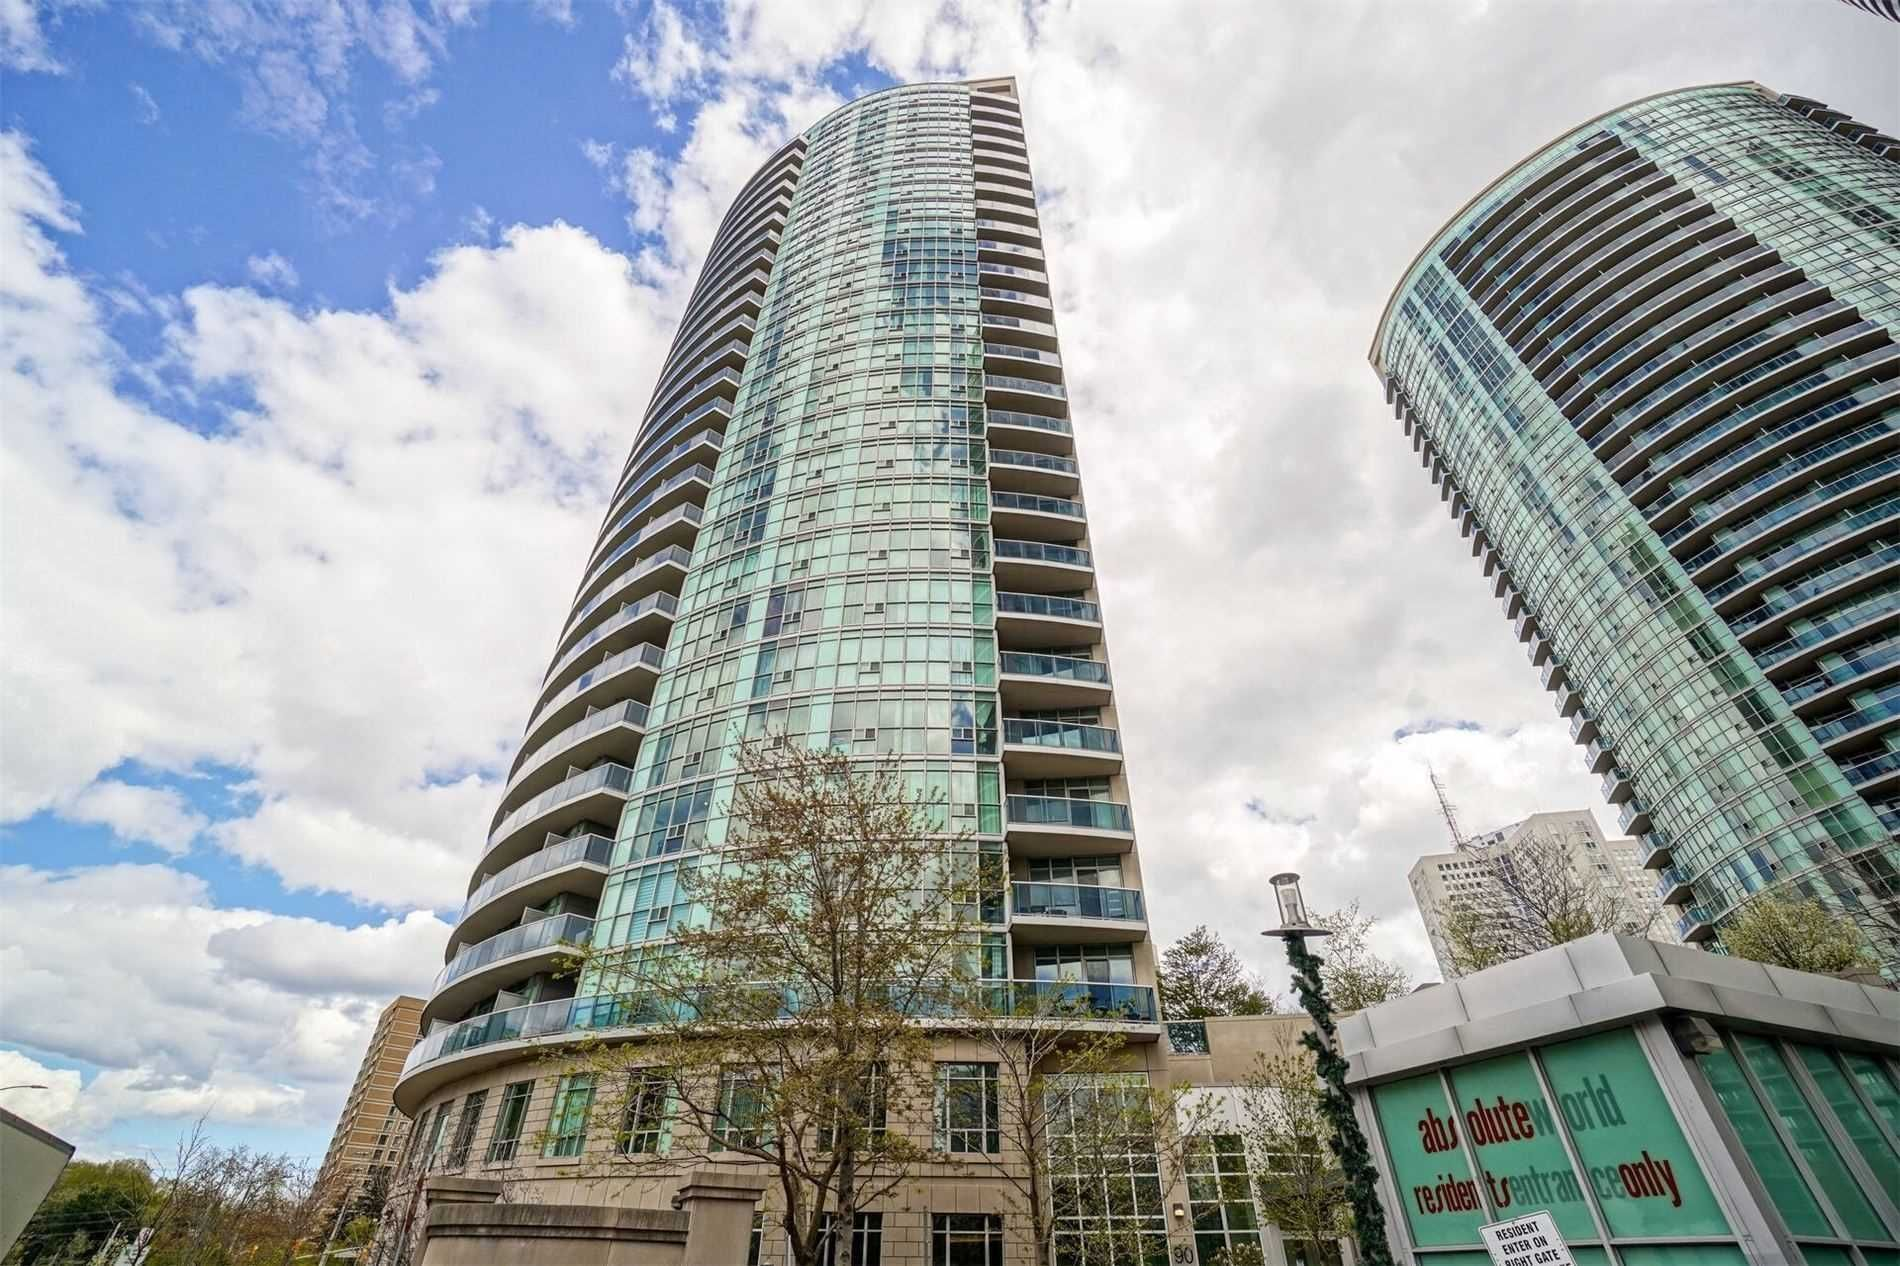 90 Absolute Ave, unit 505 for sale in Toronto - image #2